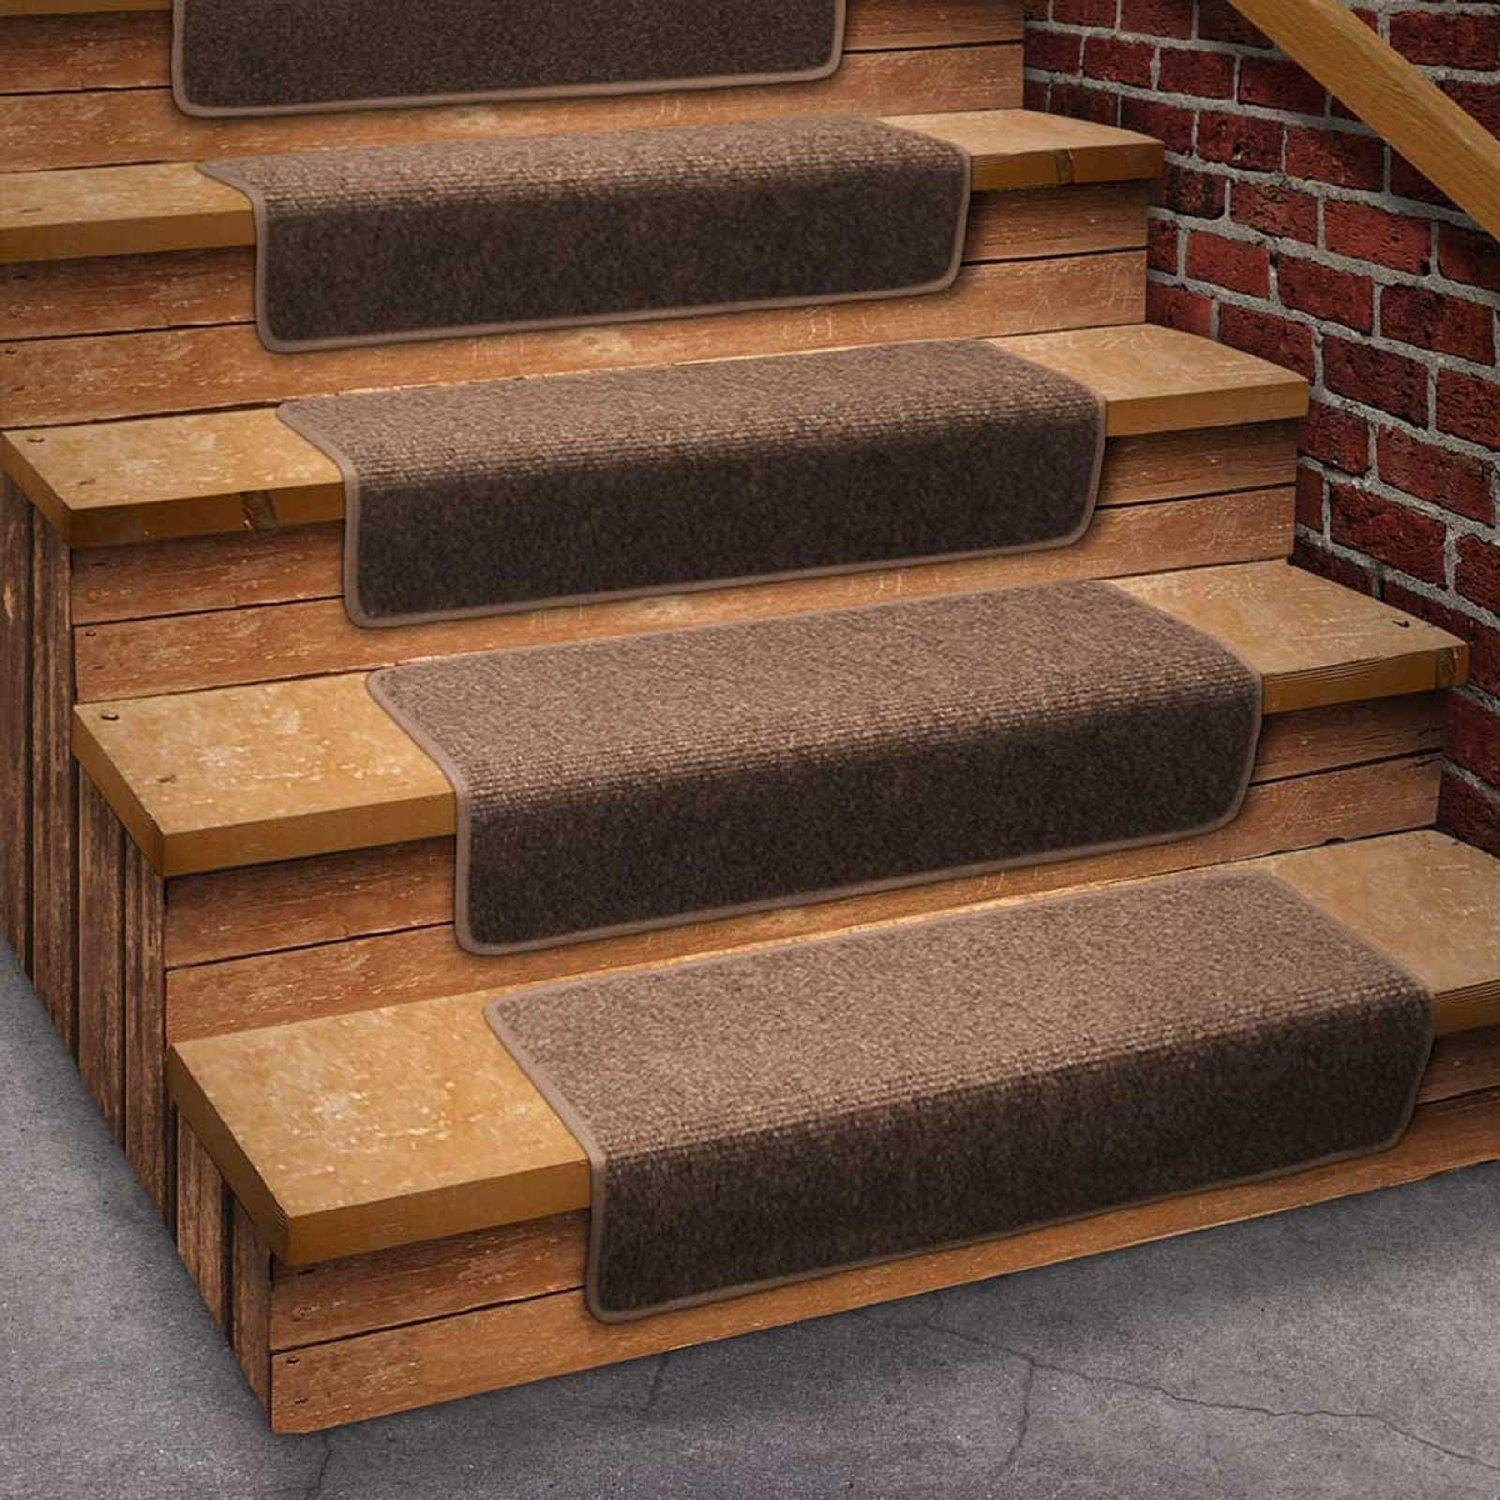 Carpet Treads For Wood Stairs Ideas On Foter | Grey Carpet Treads For Stairs | Wool Carpet | Indoor Outdoor | Skid Resistant | Custom Stair | Rugs